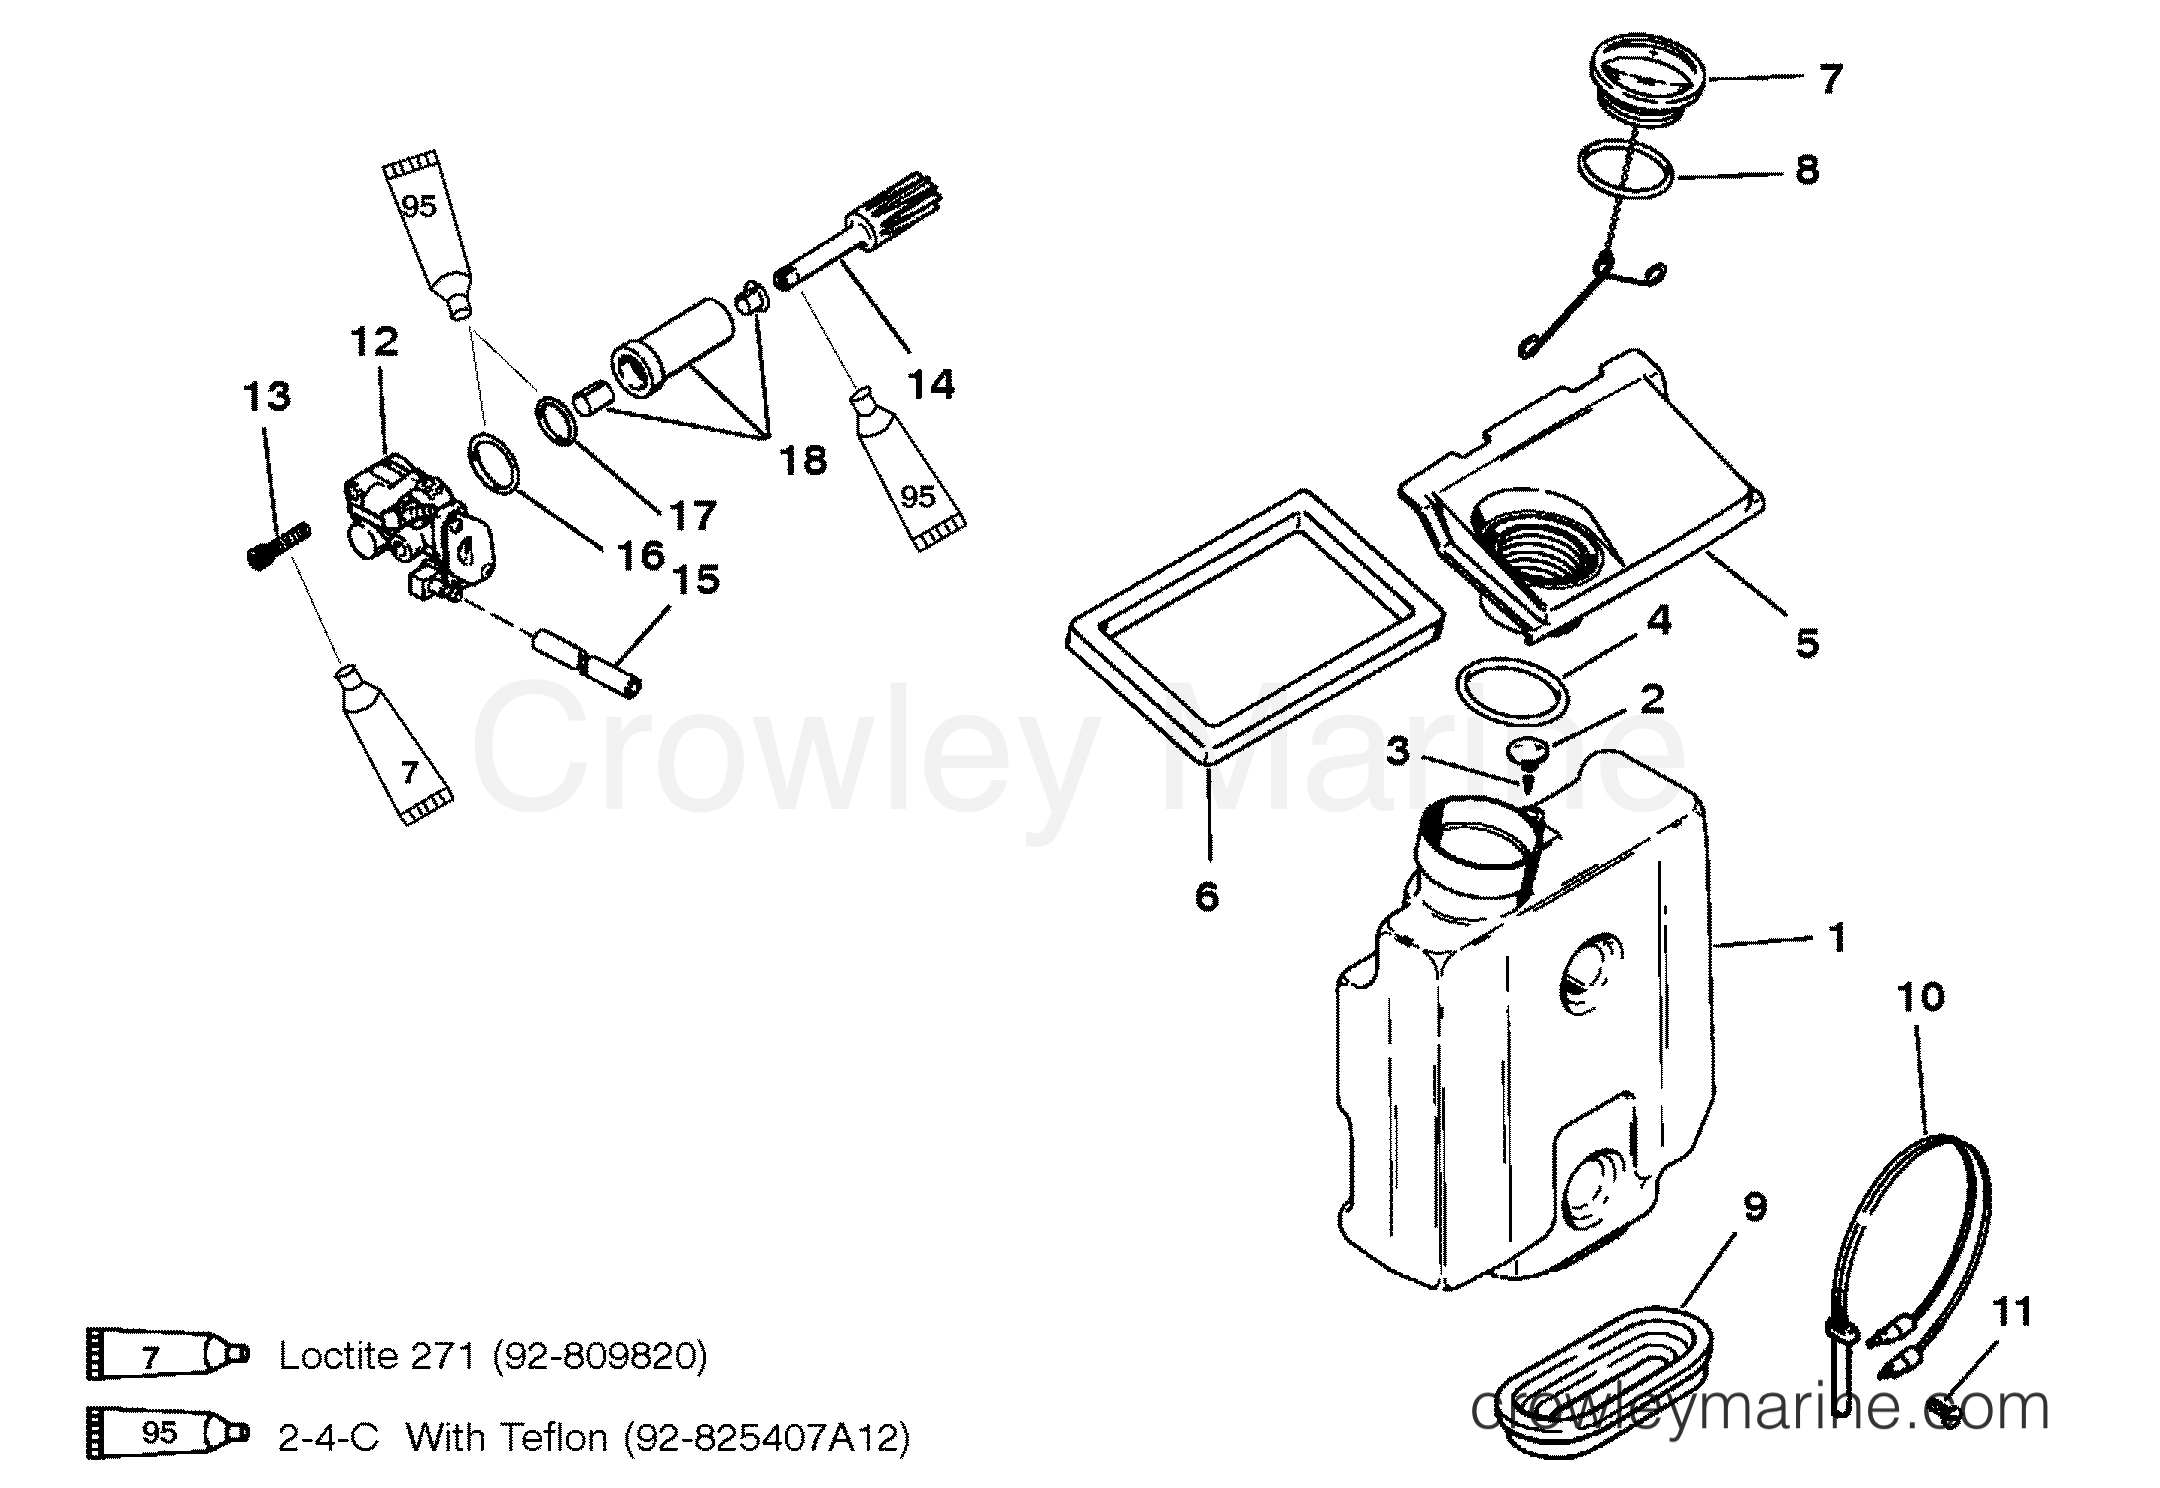 83dfc9 suzuki jimny towbar wiring diagram electrical circuit wabco abs  wiring 20diagram wire center e280a2 of suzuki jimny towbar wiring diagram20  805x1024 | wiring library  wiring library